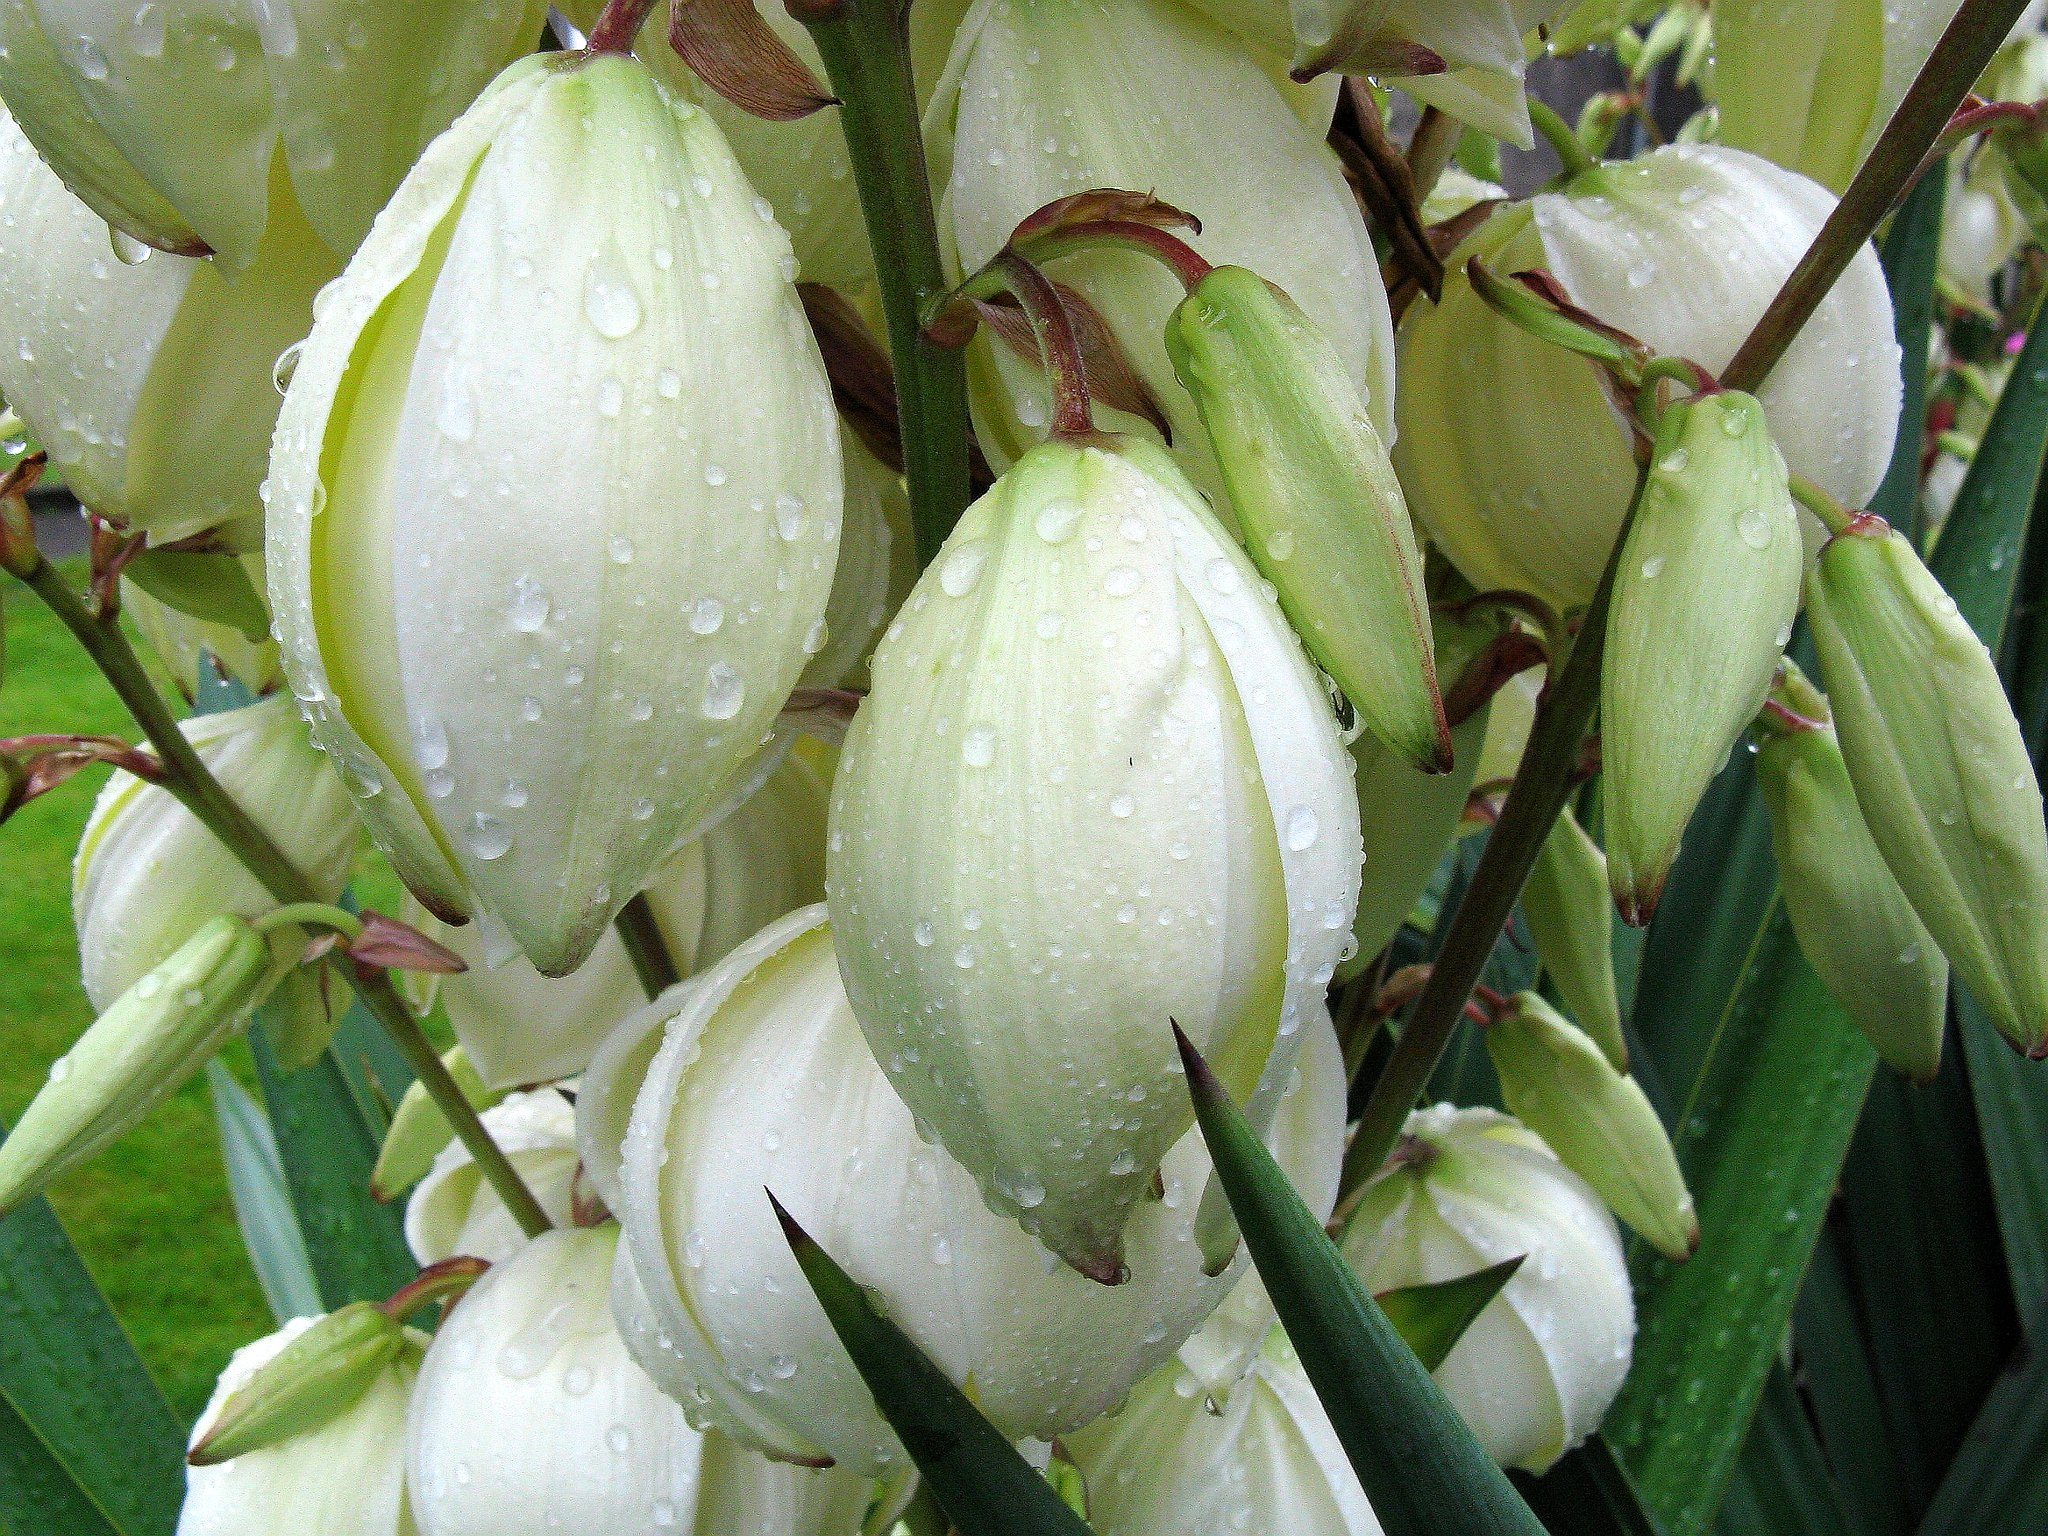 Yucca plant – what kind of plant is it?